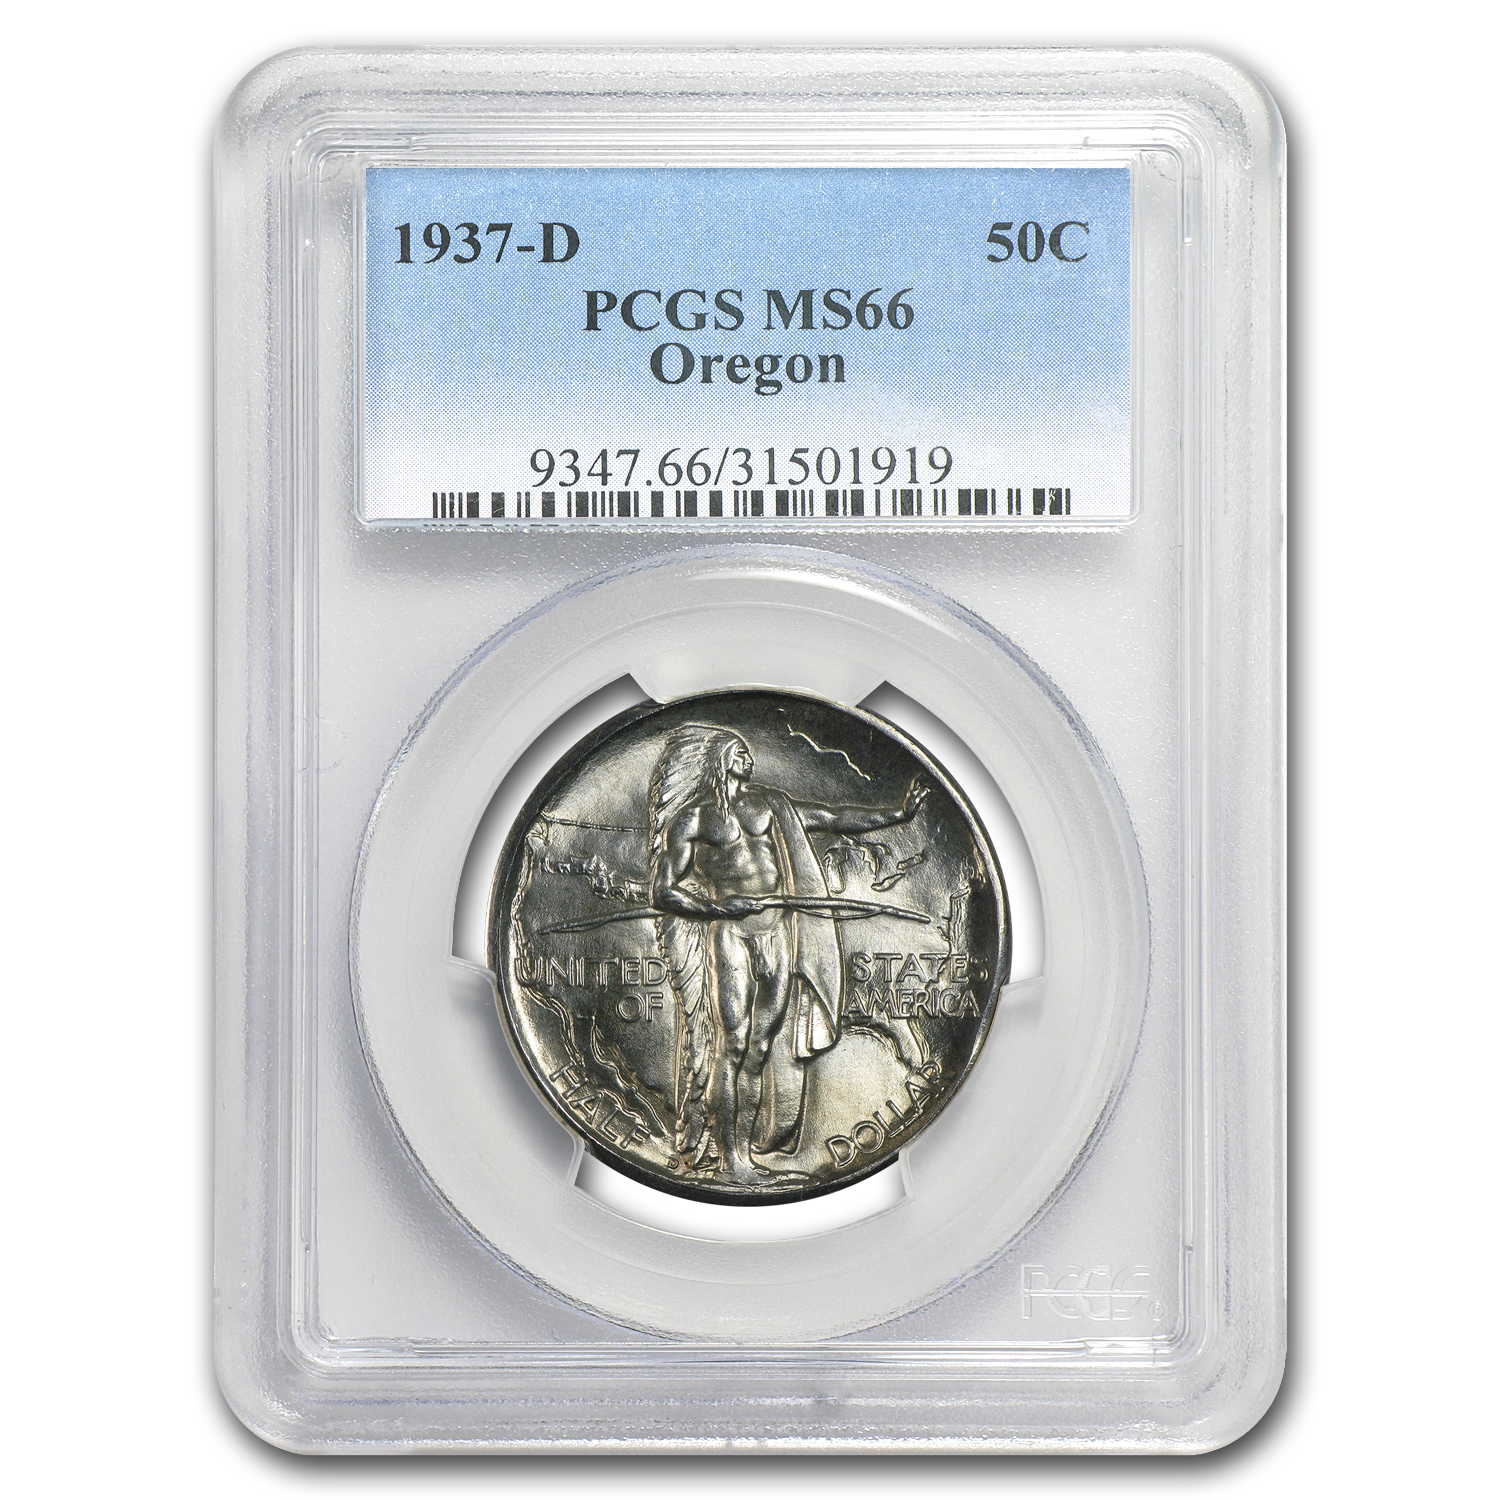 1937-D Oregon Commemorative Half Dollar MS-66 PCGS